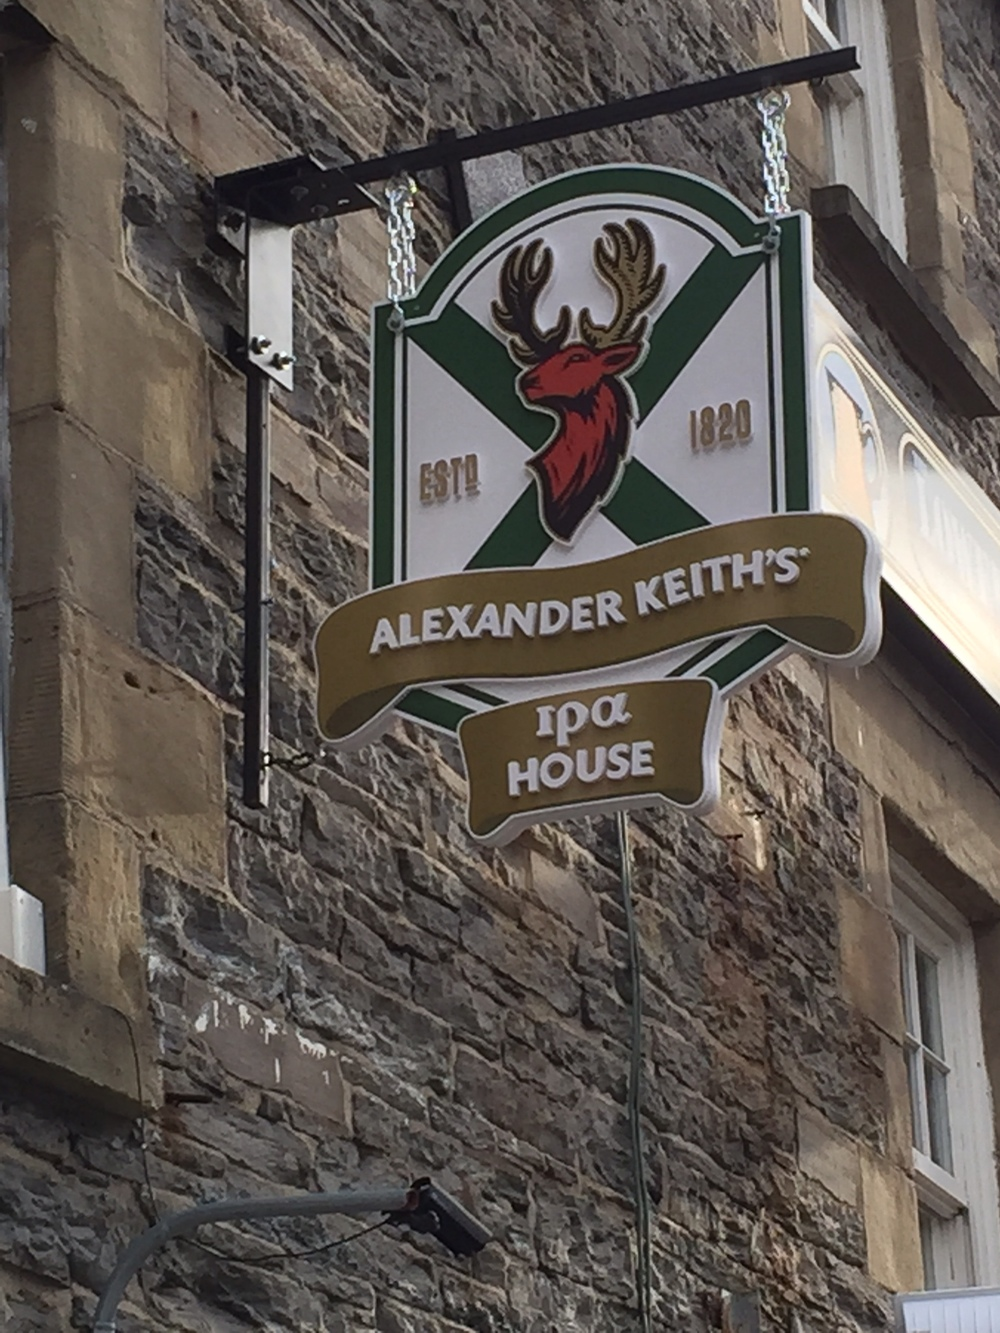 Alexander Keith's IPA House signage